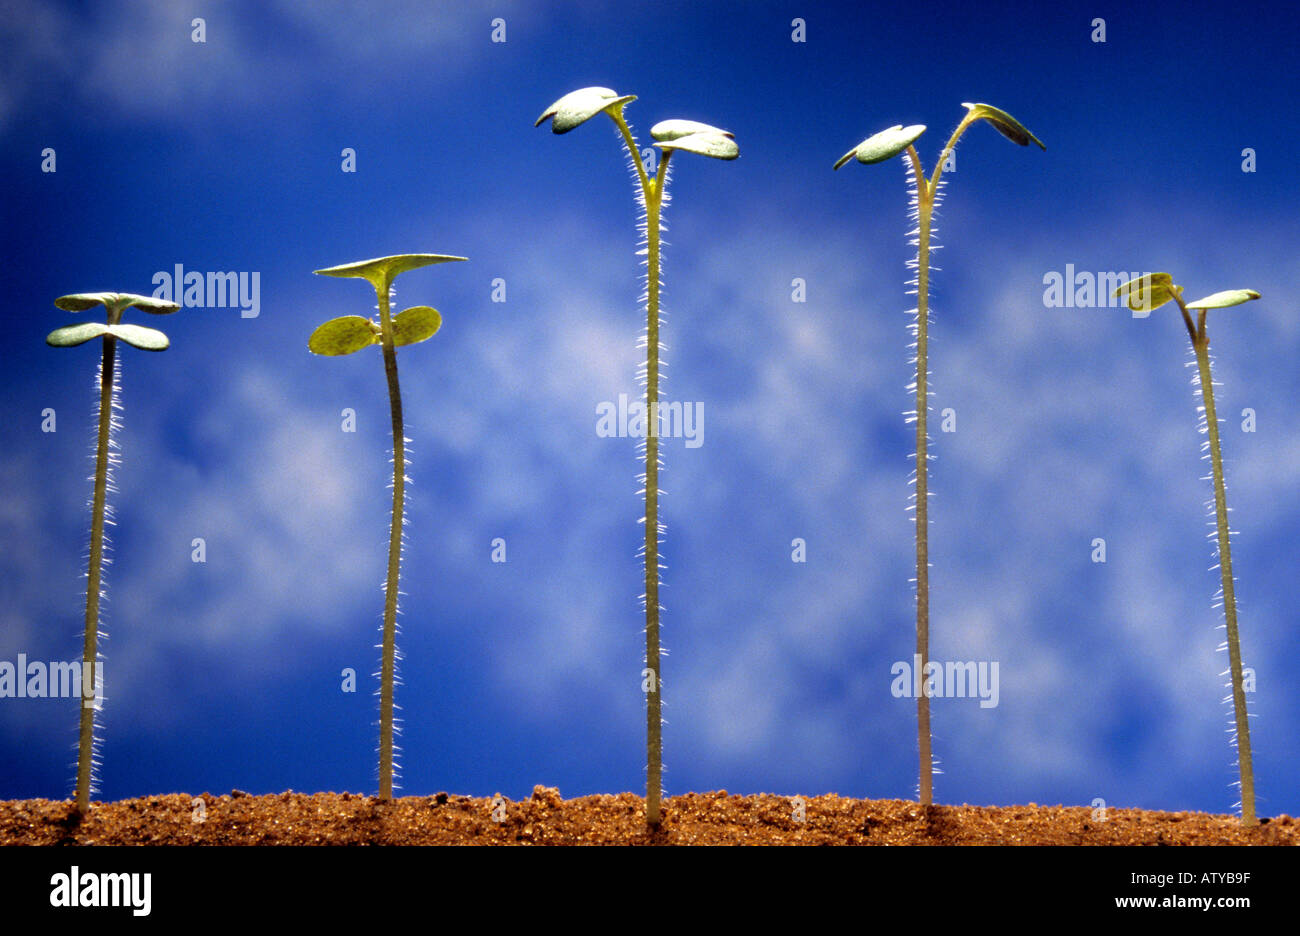 5 tiny mustard seedlings with their first pair of seed leaves stand in sand against a blue sky - Stock Image